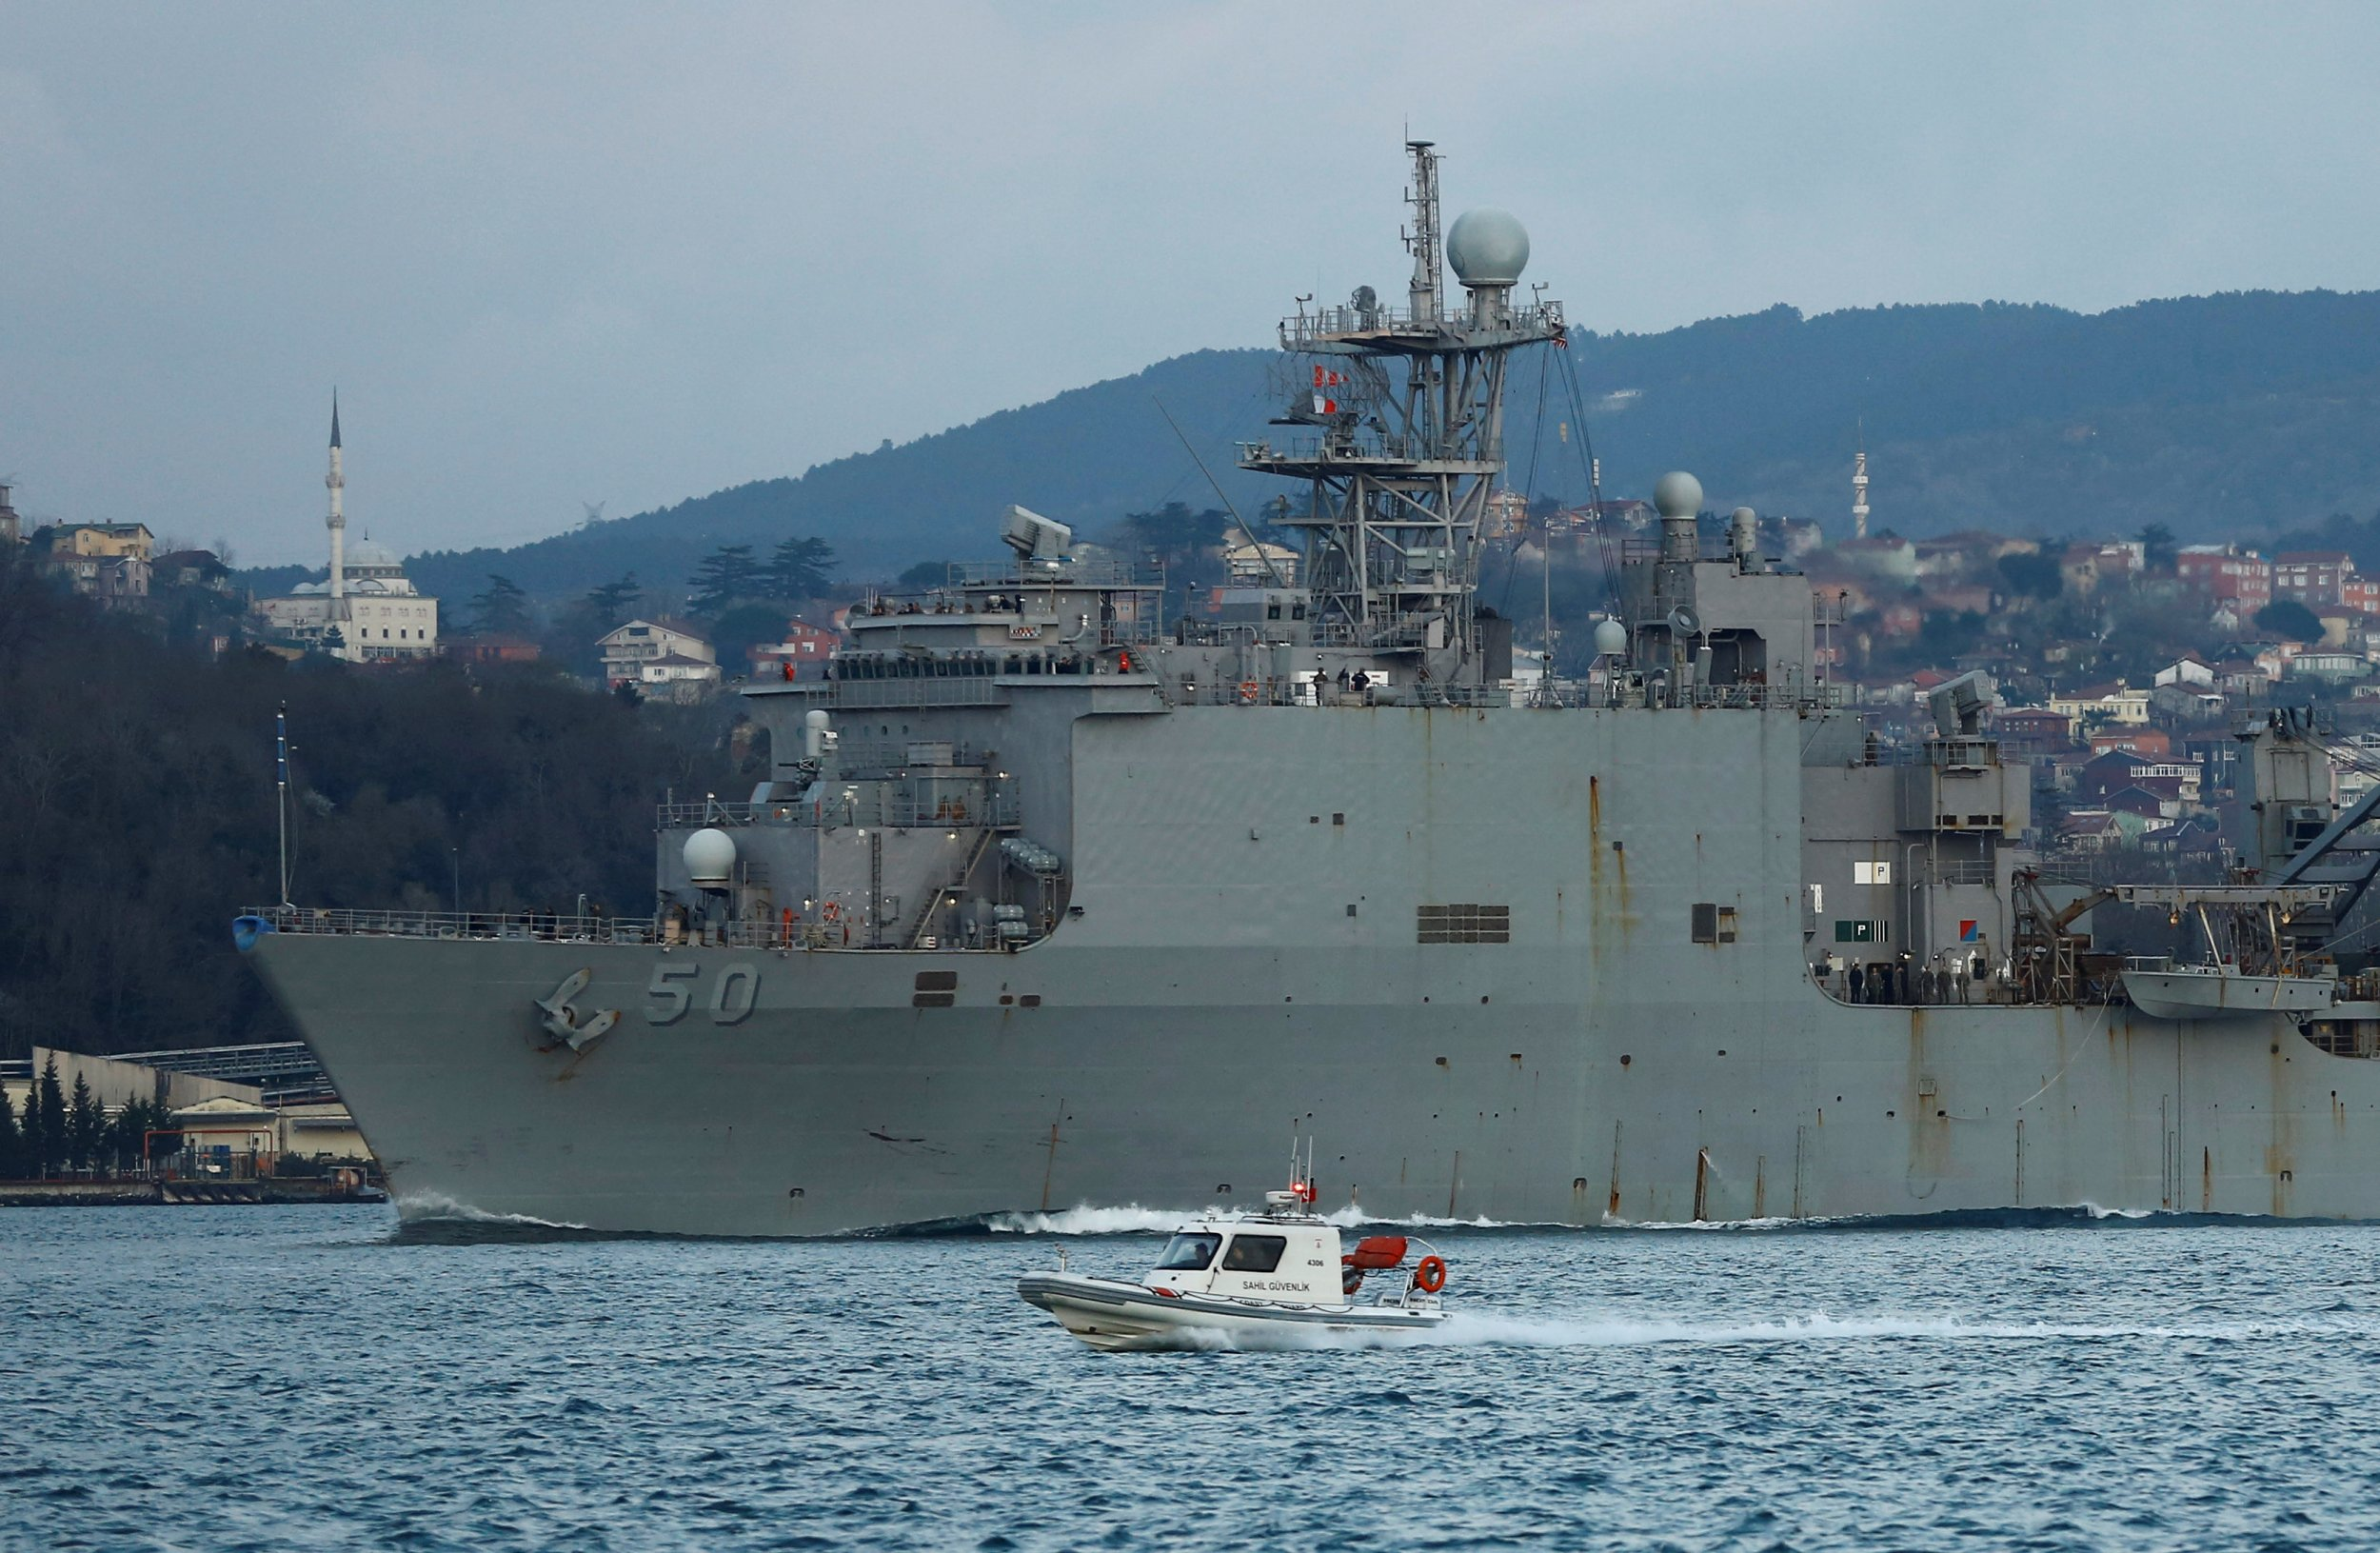 Russia and nato war games raise tensions in black sea uss carter hall a dock landing ship of the us navy sets sail in the bosphorus on its way to the black sea in istanbul turkey march 17 2017 publicscrutiny Choice Image